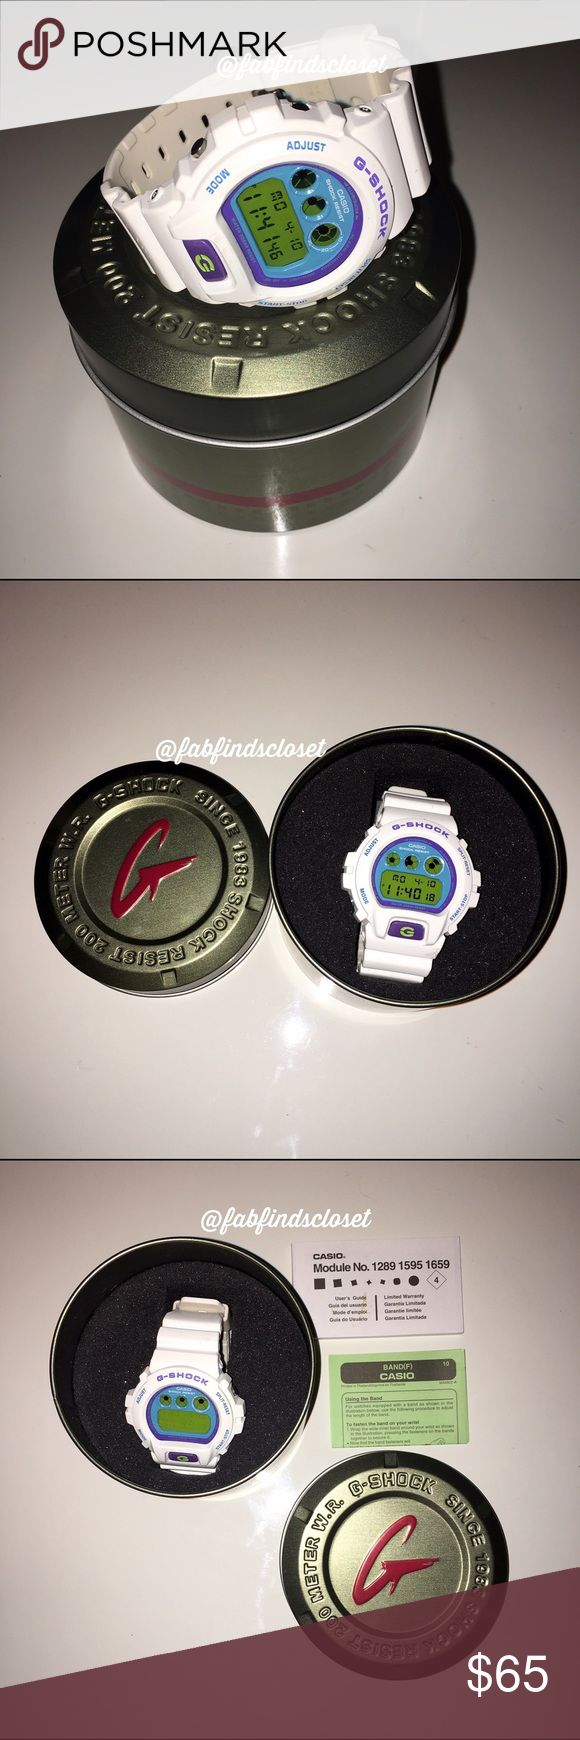 G-Shock water resistant digital watch White G Shock watch used a hand full of times. In working condition. Selling to get a different style. Comes with original box and booklets. No trades. G-Shock Accessories Watches